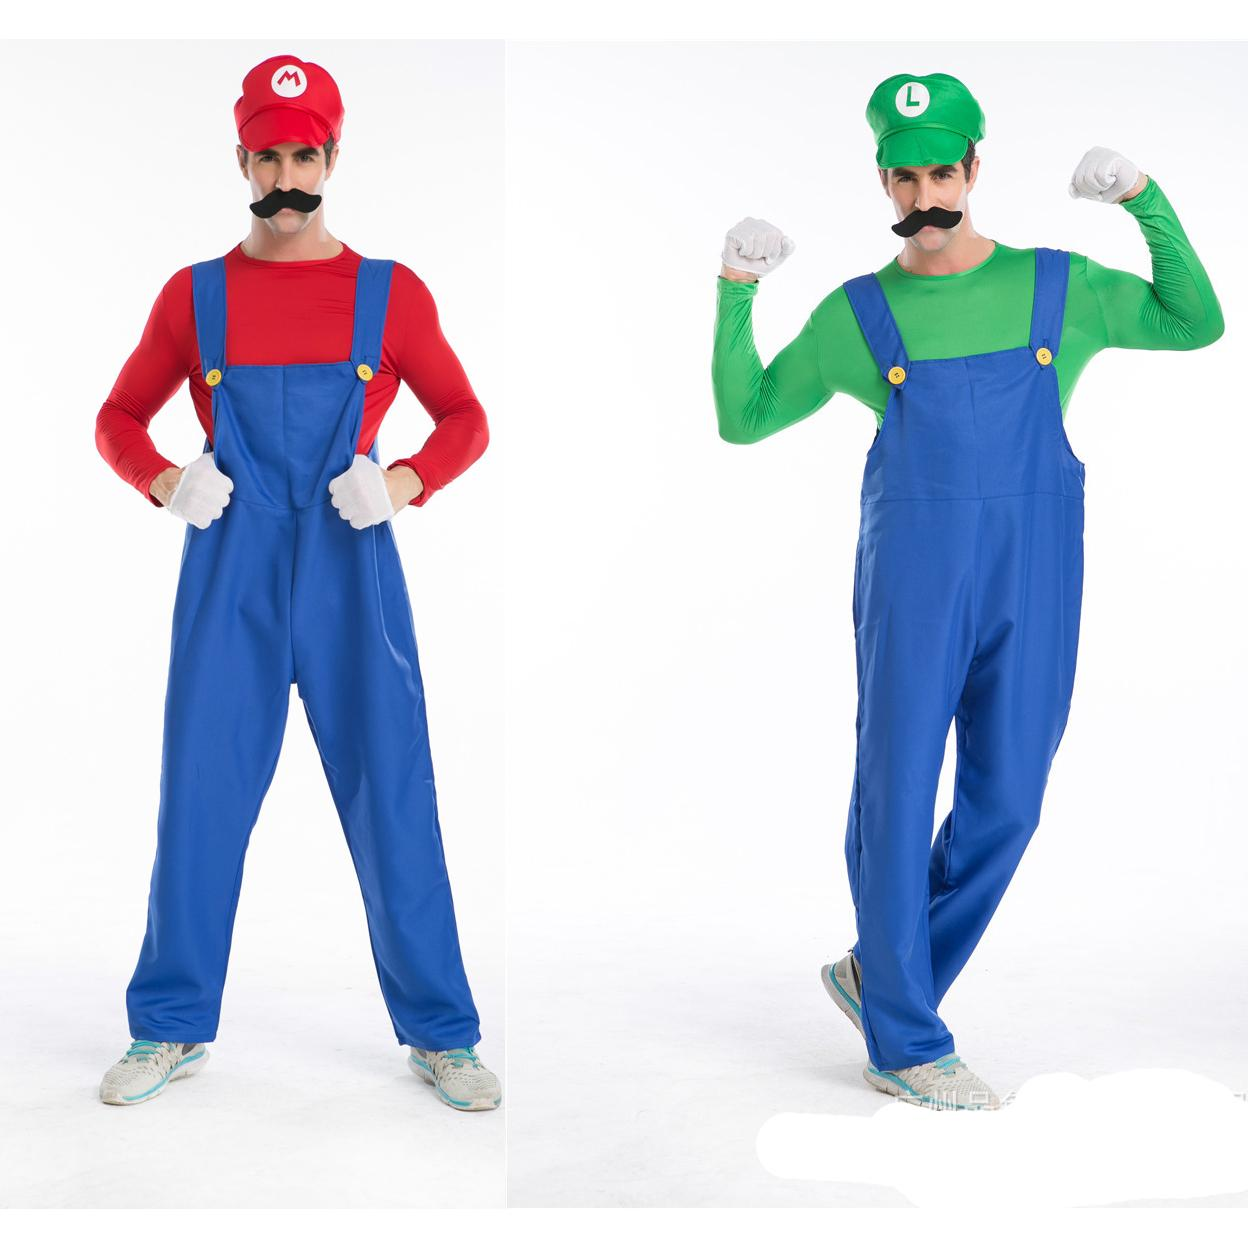 Super Mario Brothers Masquerade Costume Cosplay For Adult Men Hollaween Costumes Kit With Hat Beard Glove Size M L Xl Girls Costumes Spiderman Costumes From ...  sc 1 st  DHgate.com & Super Mario Brothers Masquerade Costume Cosplay For Adult Men ...